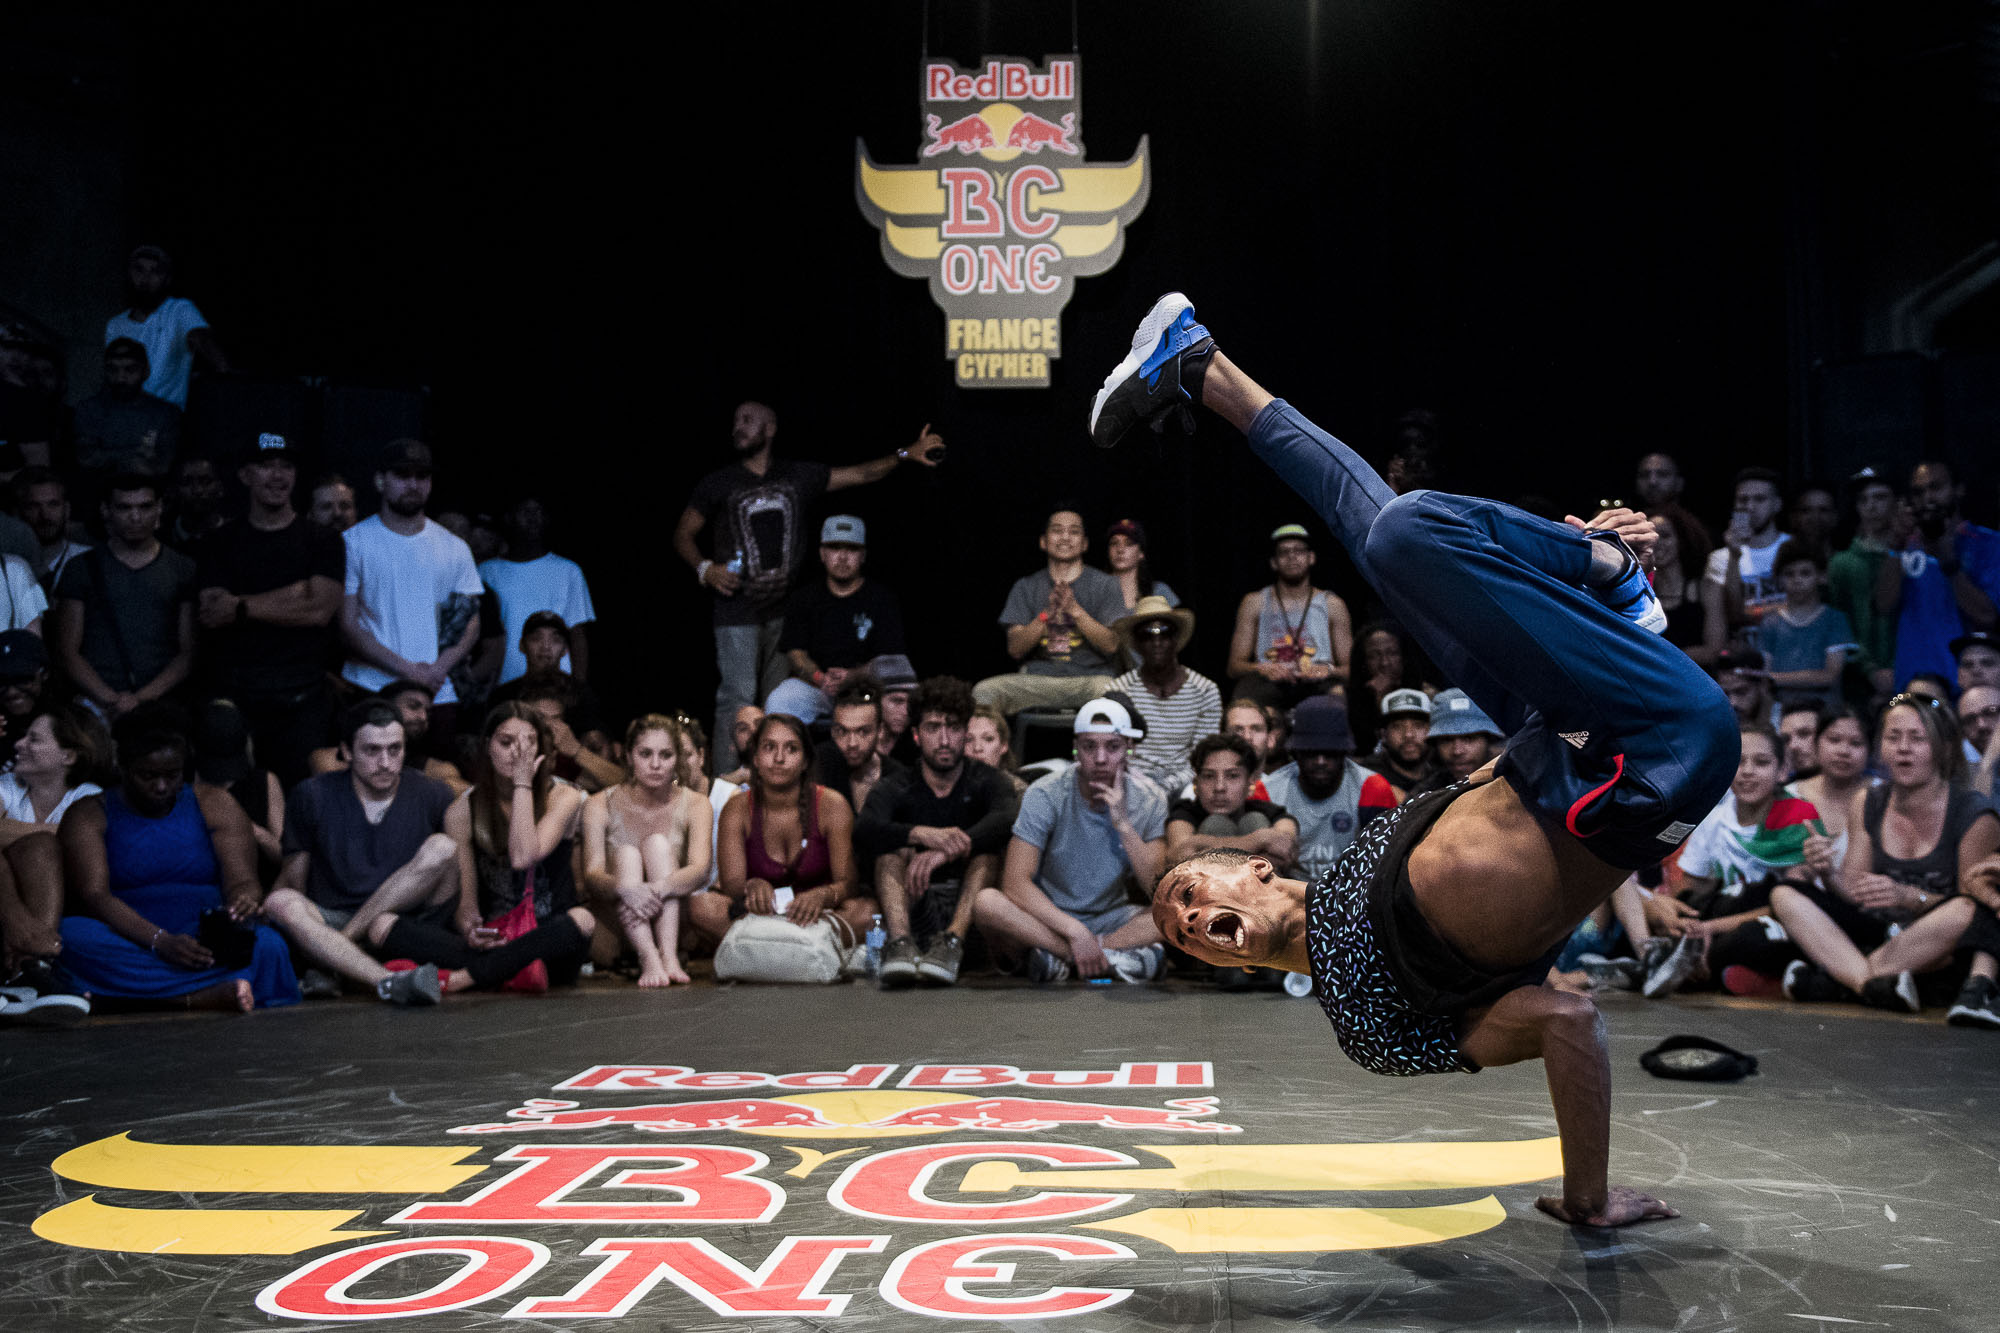 Niggaz competes at the WIP Villette during the Red Bull BC One France Cypher Final in Paris, France on July 10th 2016.